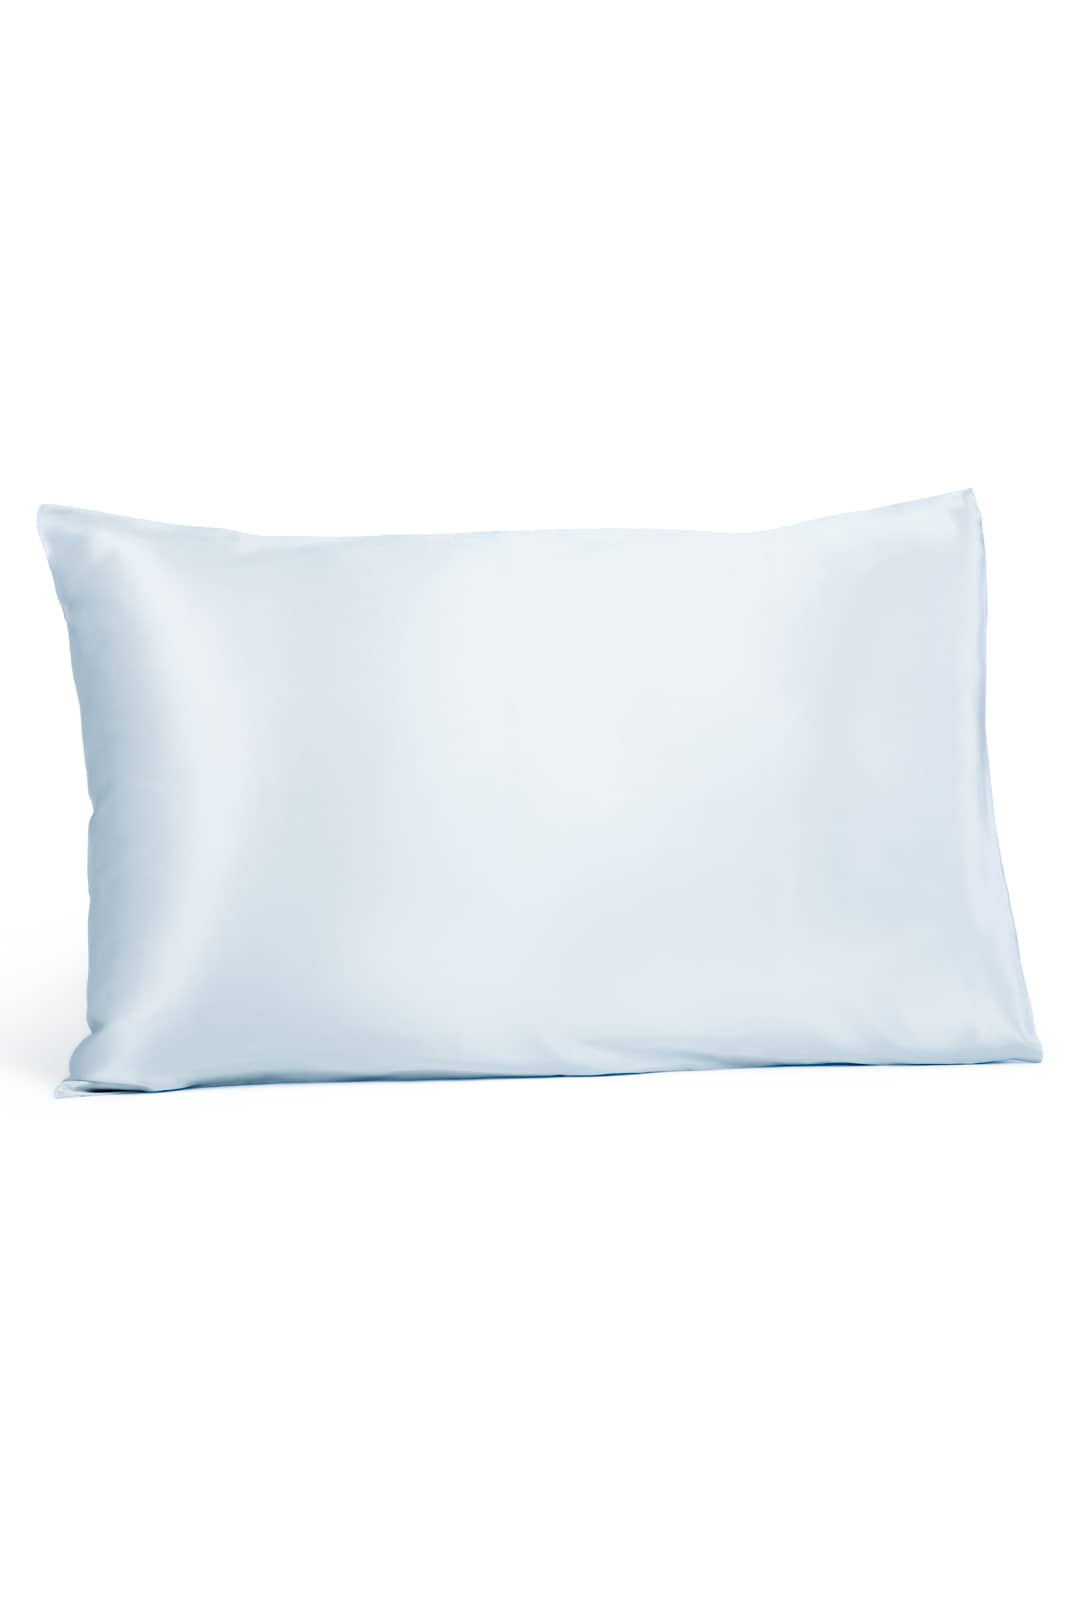 100% Pure Mulberry Silk Pillowcase - 19 Momme